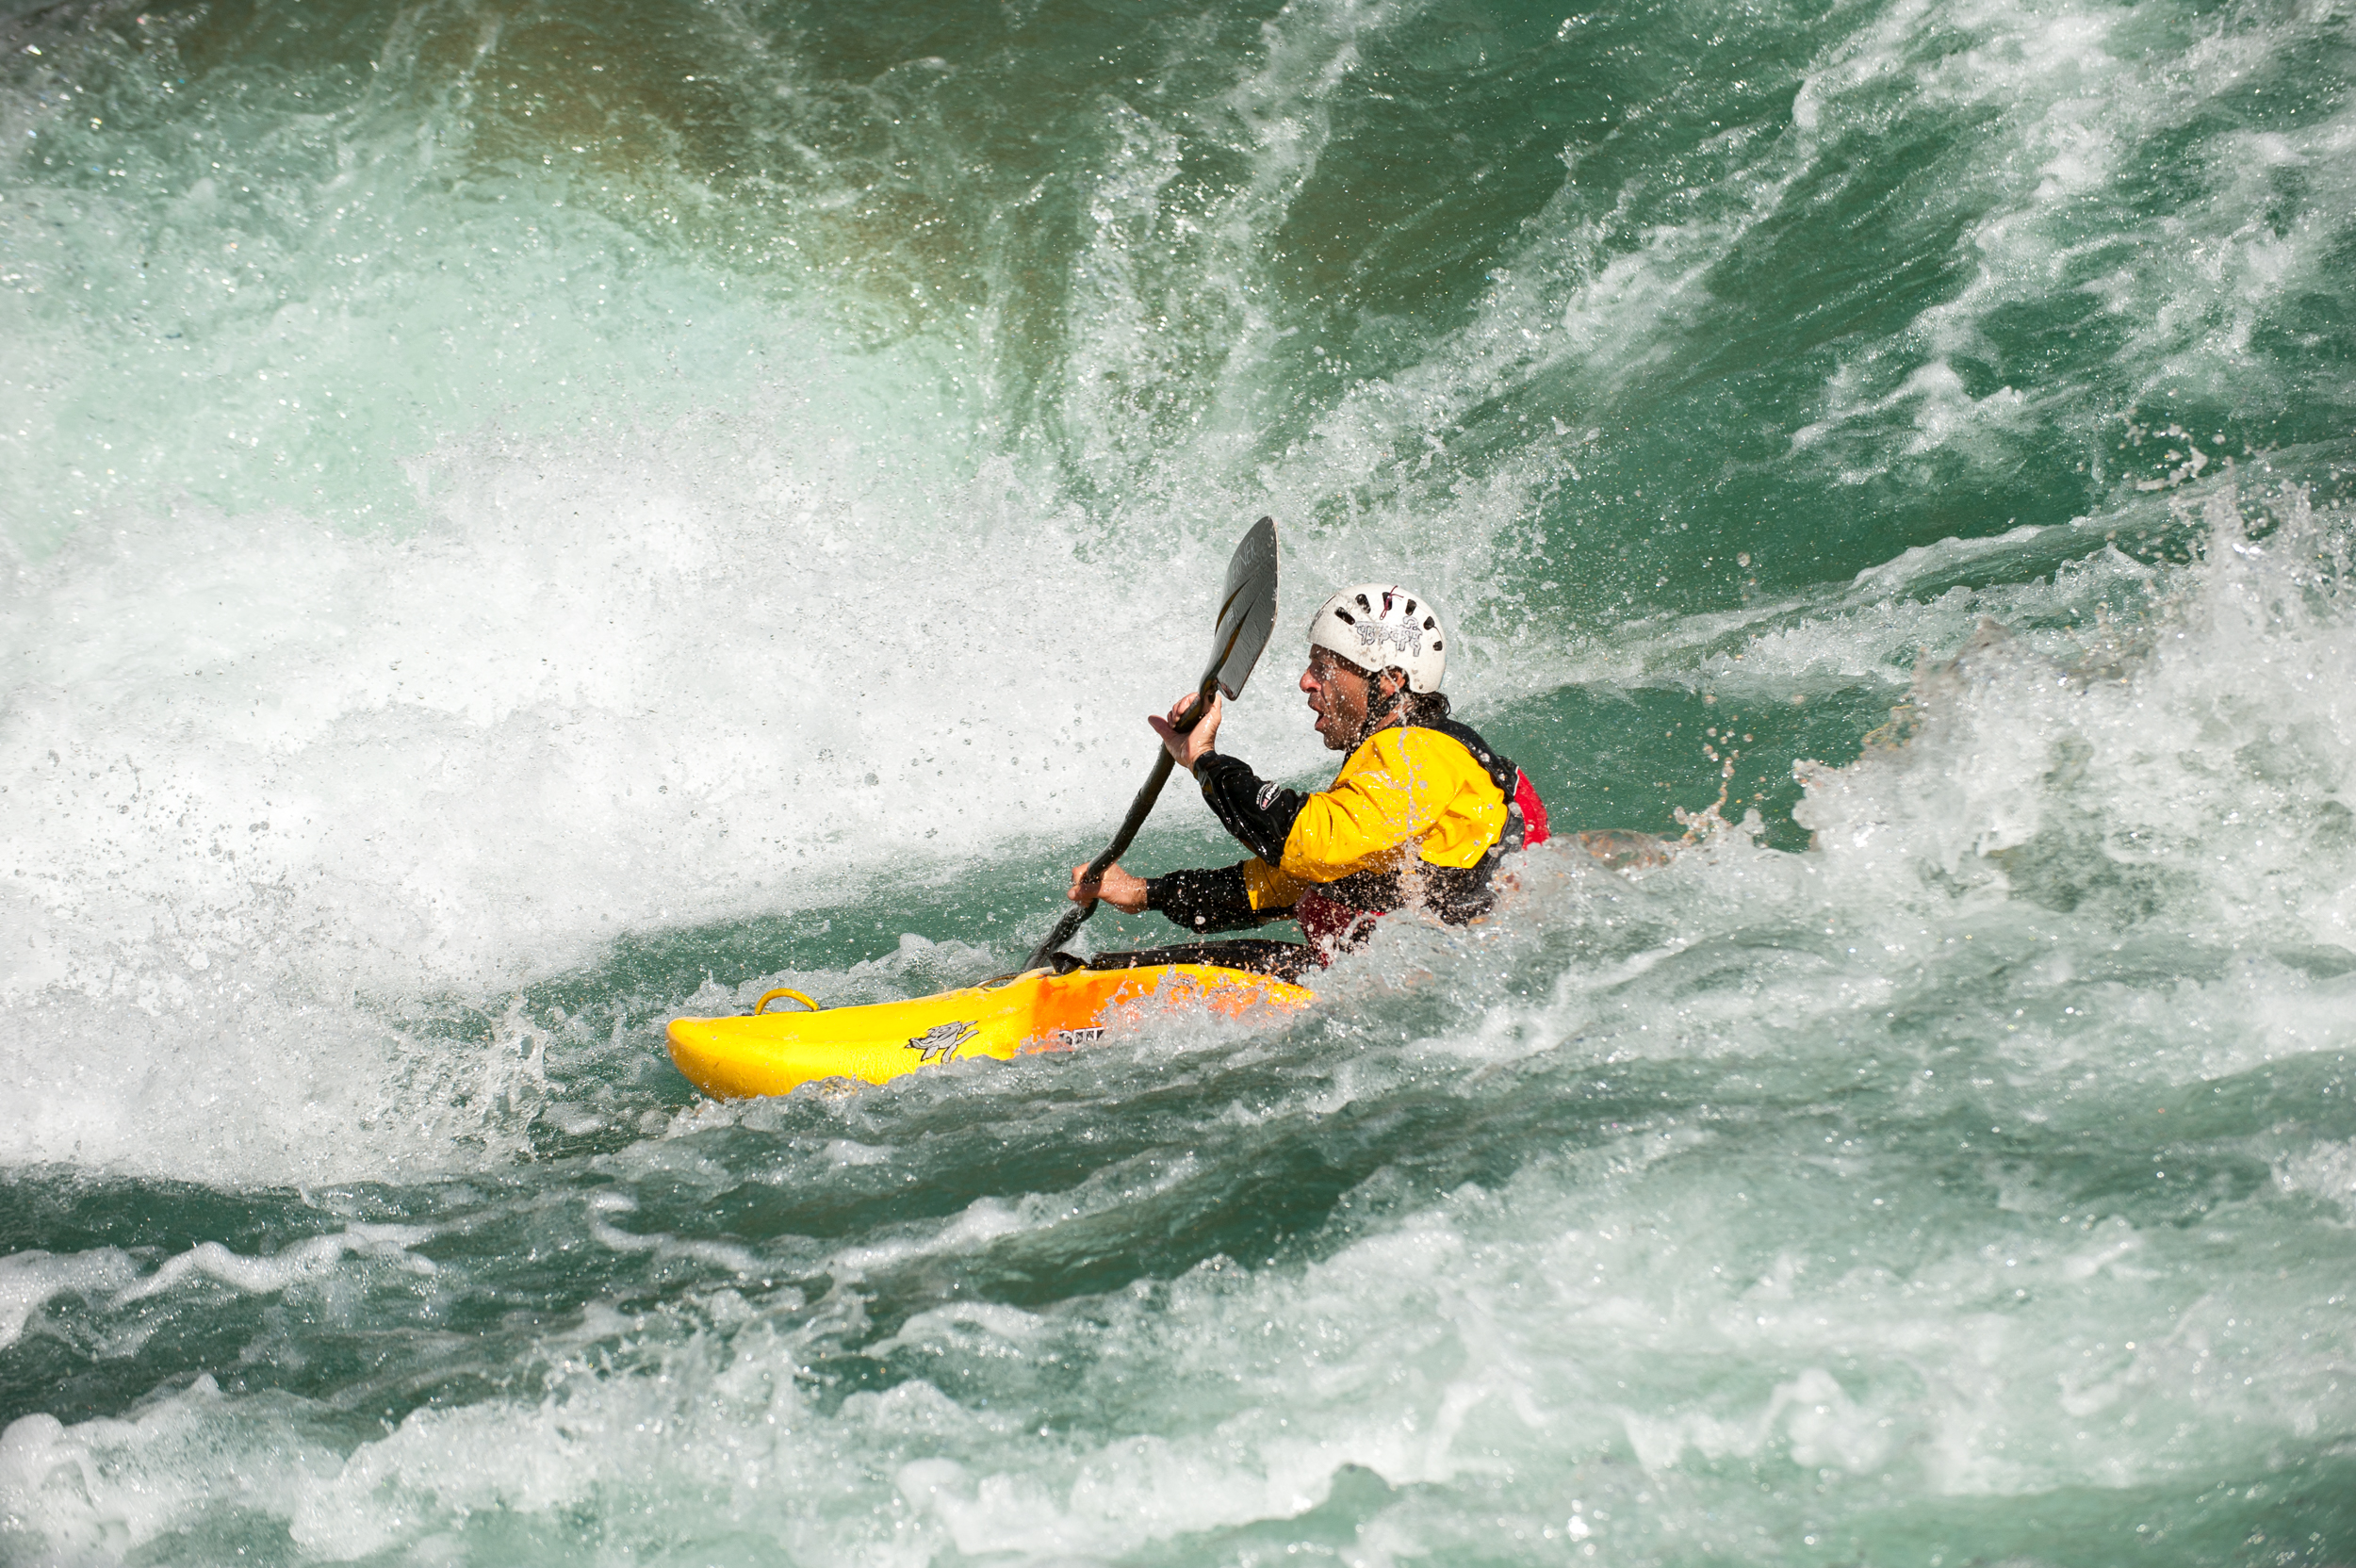 SOLO MISSION –A kayaker's wet dream, but not for beginners. It is usually possible to stow a kayak on a raft for the big rapids, if you're unsure.